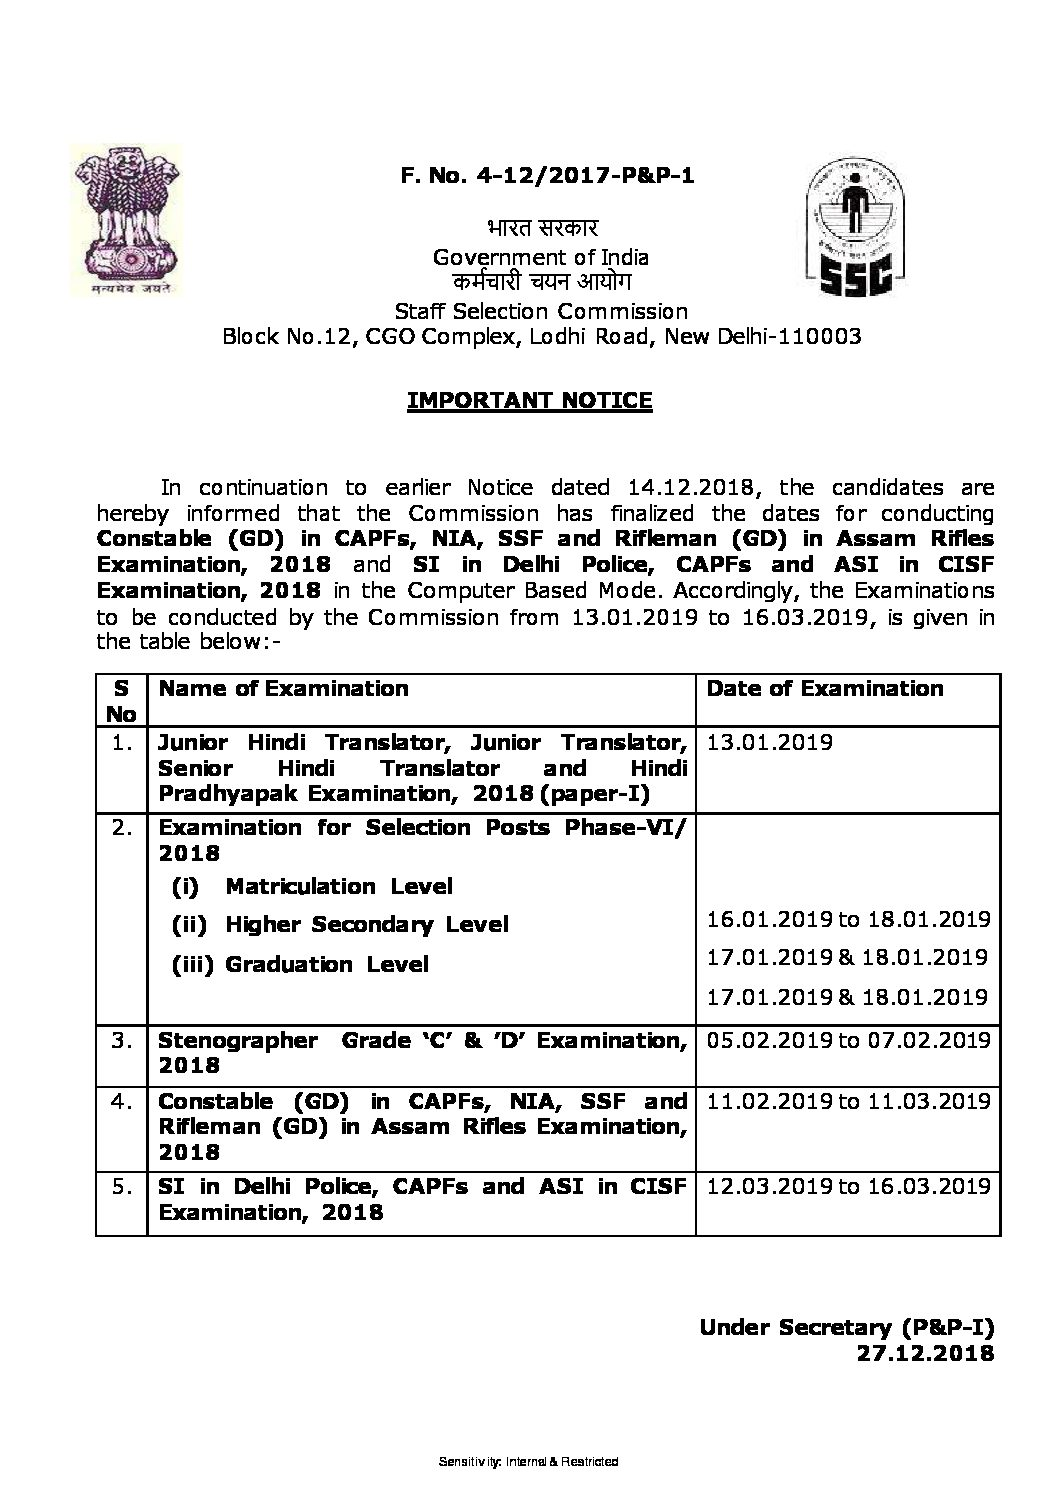 Important Notice-Examinations to be conducted by the Commission from 13.01.2019 to 16.03.2019